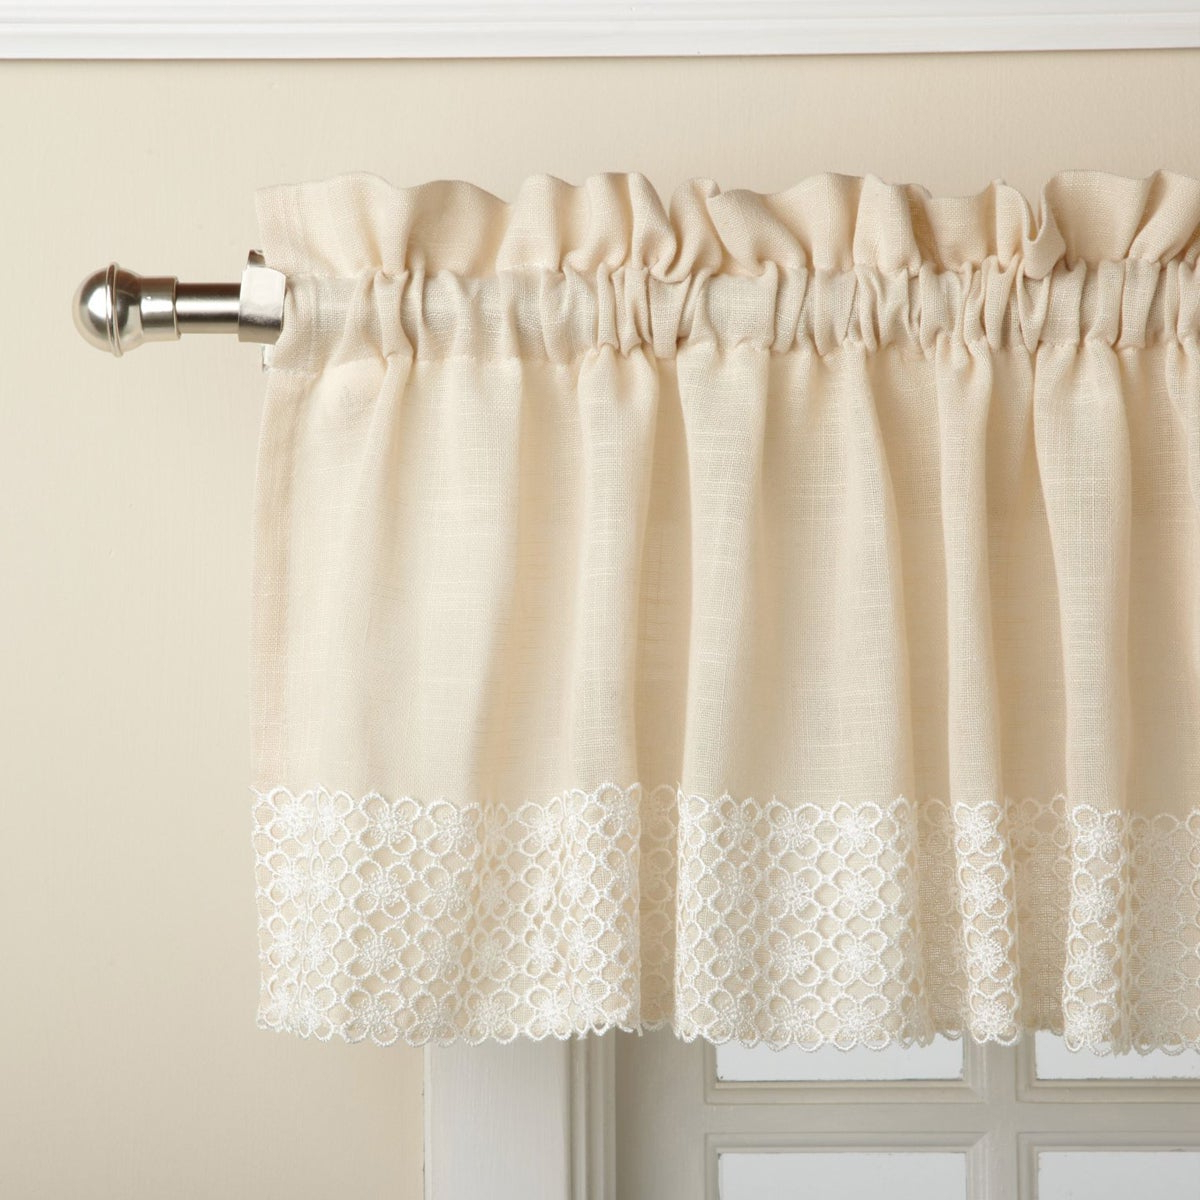 French Vanilla Country Style Curtain Parts With White Daisy Lace Accent Inside Well Liked French Vanilla Country Style Curtain Parts With White Daisy Lace Accent Tier, Swag And Valance Options (View 3 of 20)